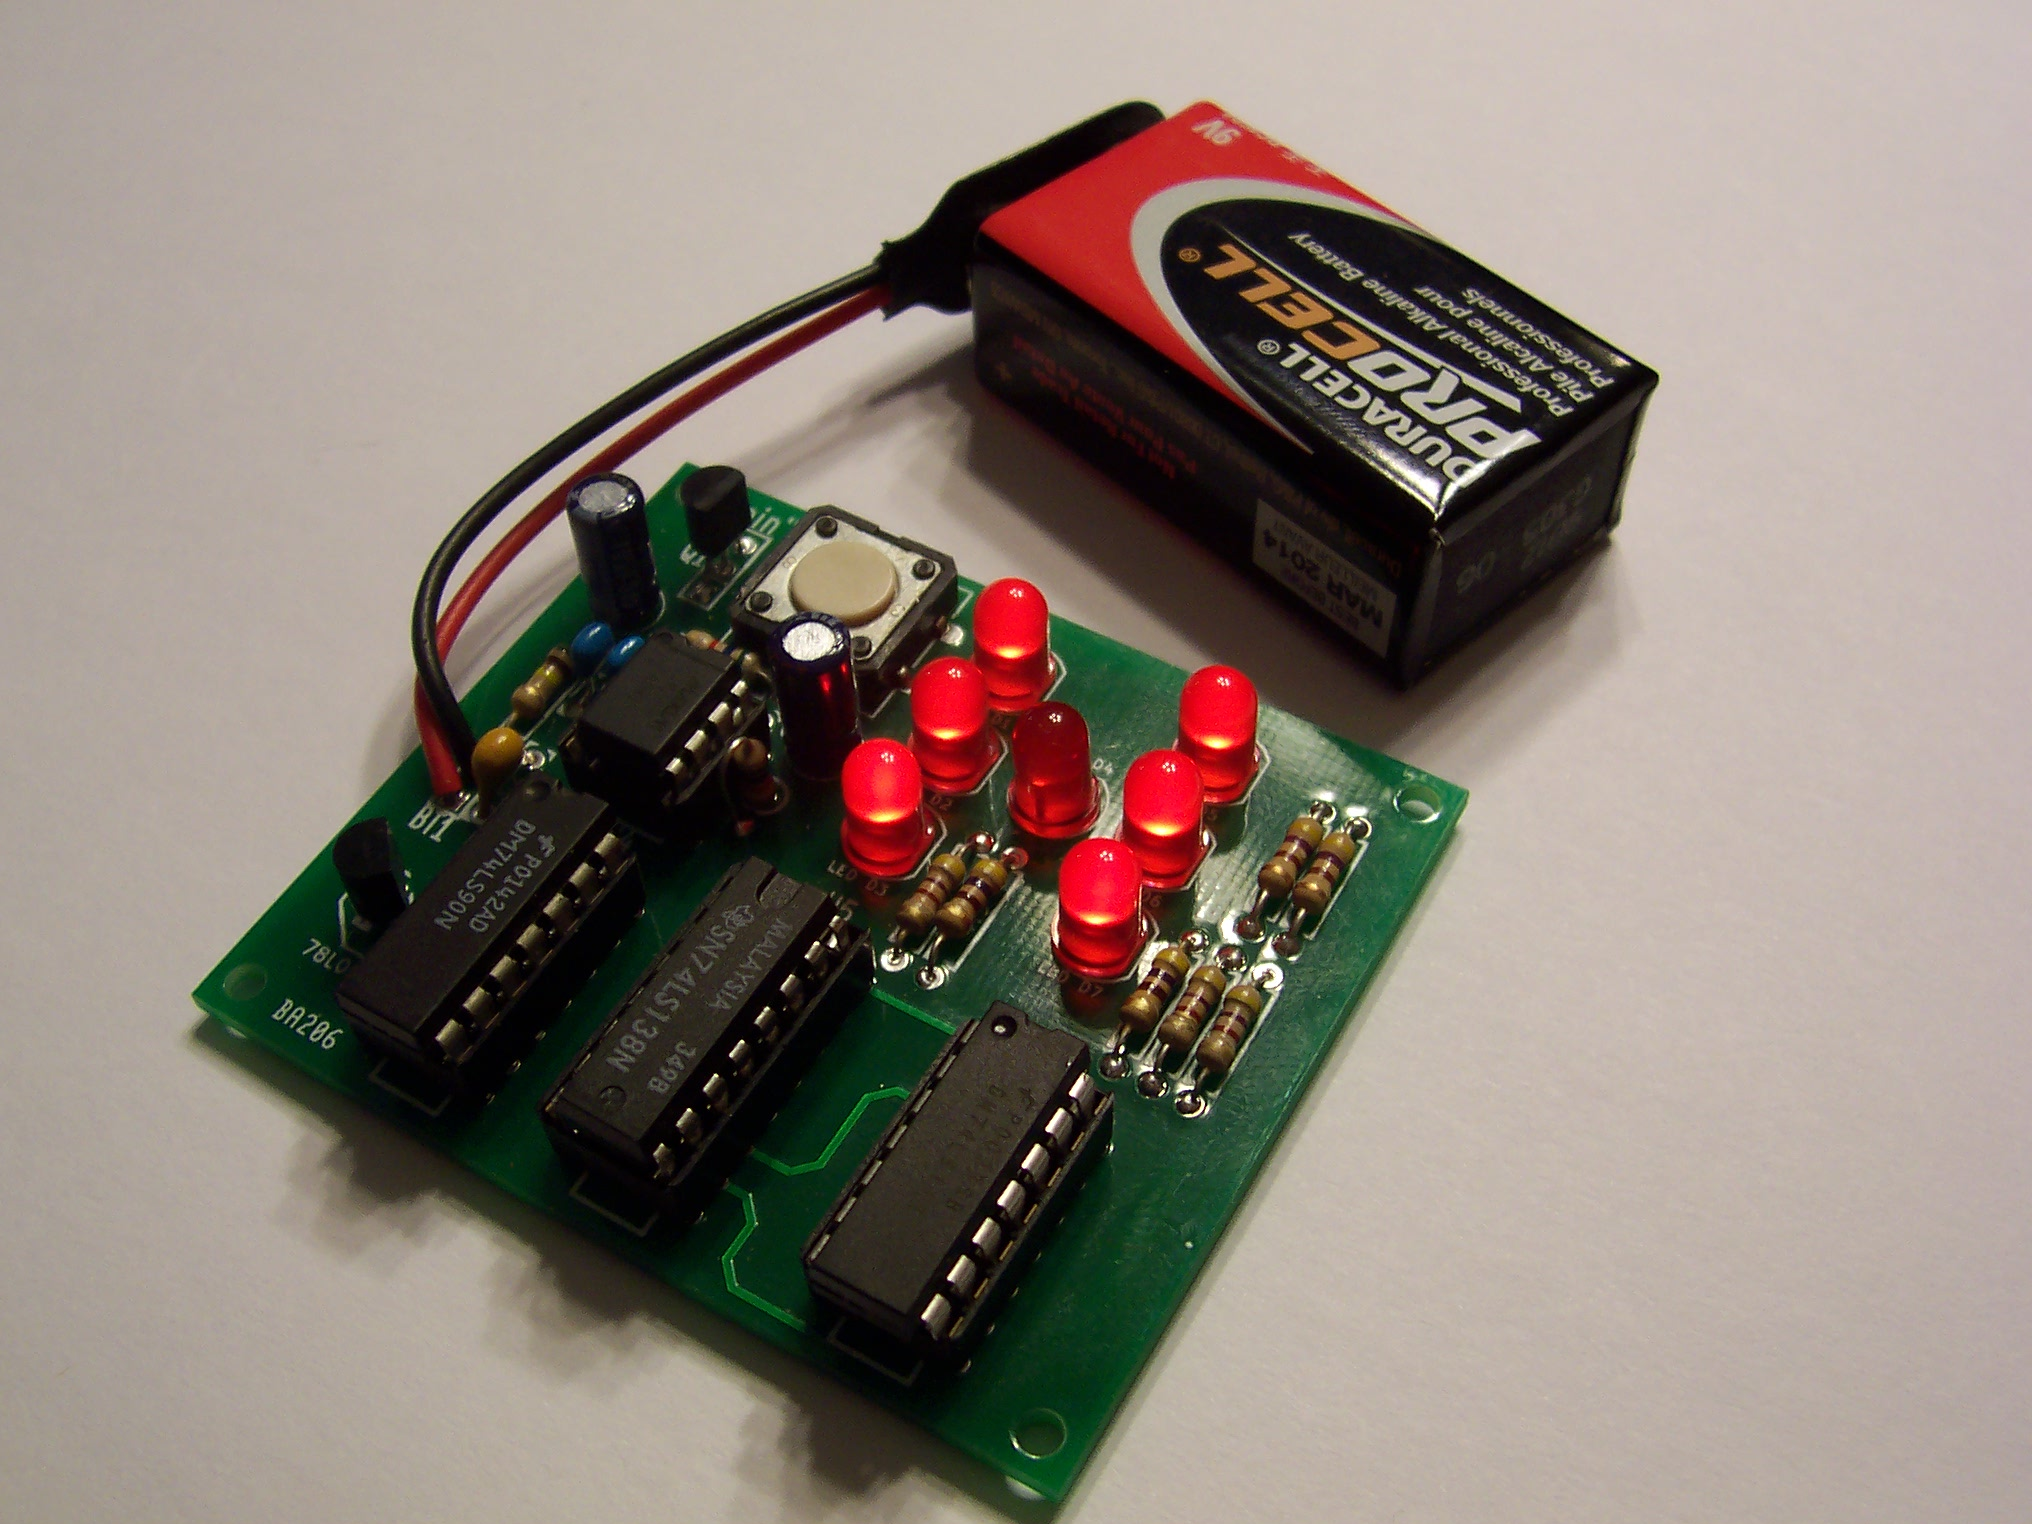 Bcd Counter Circuit Using The 74ls90 Decade Counter